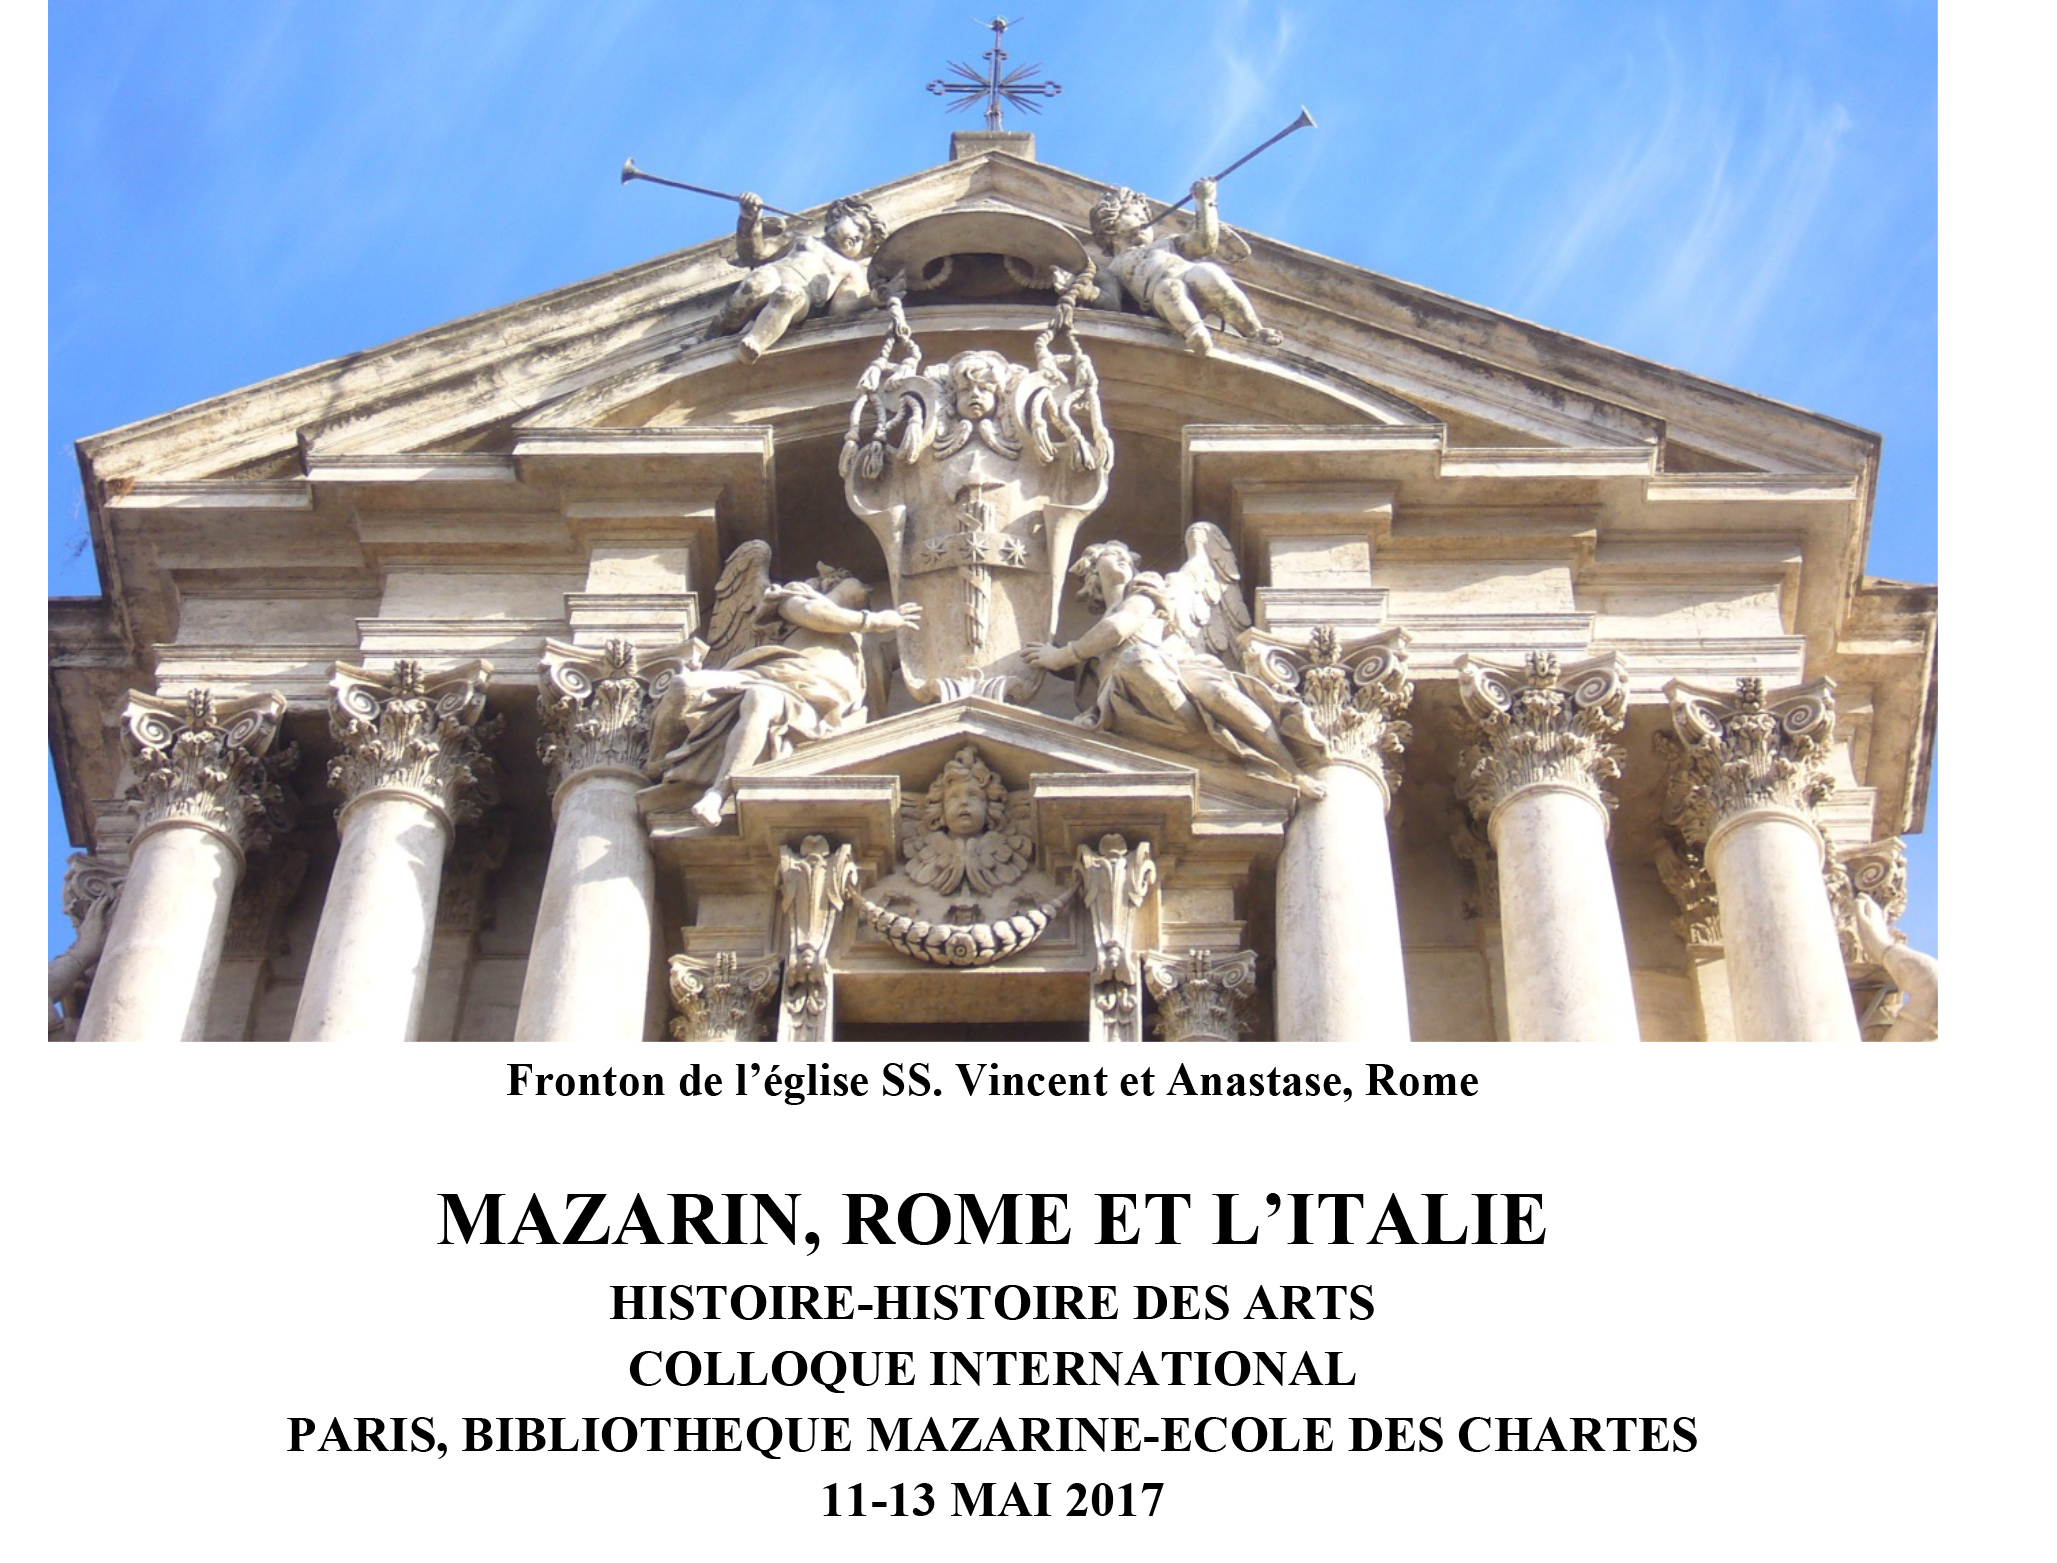 colloque mazarin rome et l italie paris 11 13 mai 2017 crcv. Black Bedroom Furniture Sets. Home Design Ideas